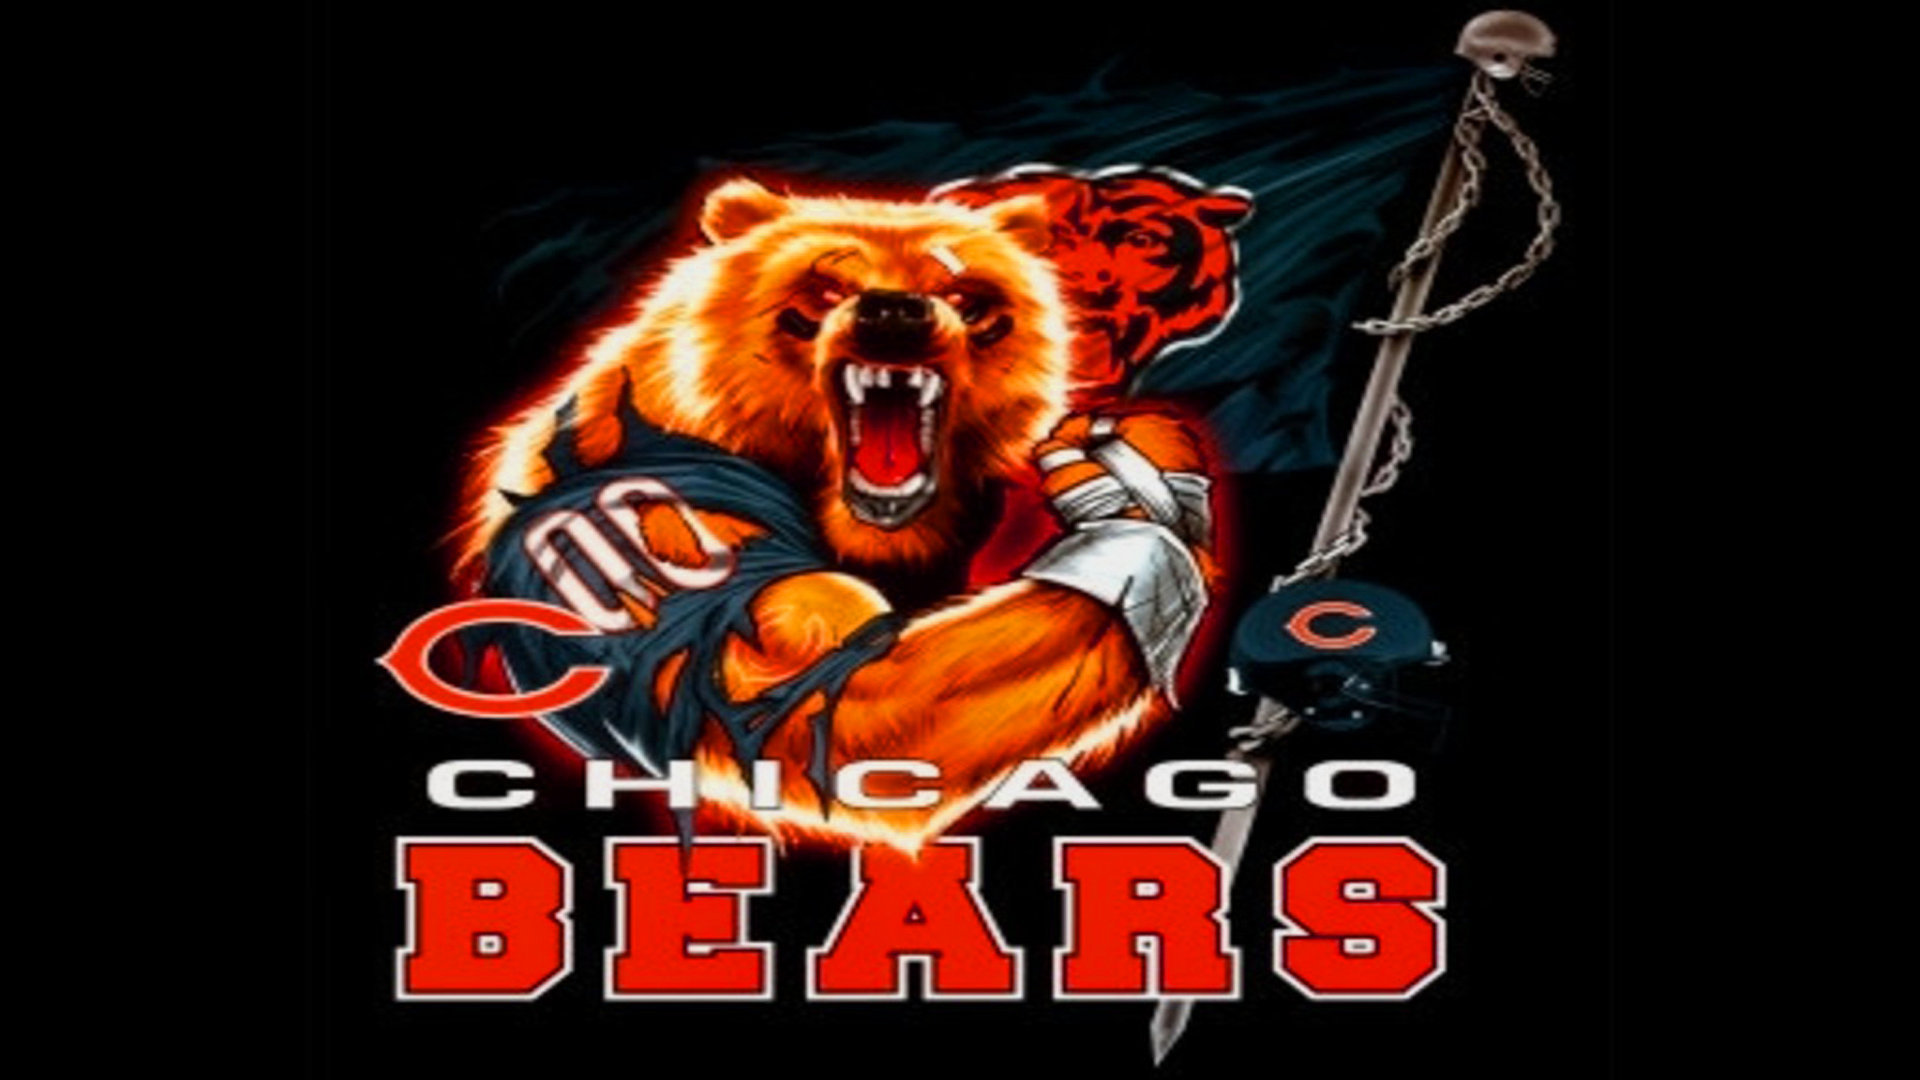 CHICAGO BEARS nfl football g wallpaper 1920x1080 156166 1920x1080